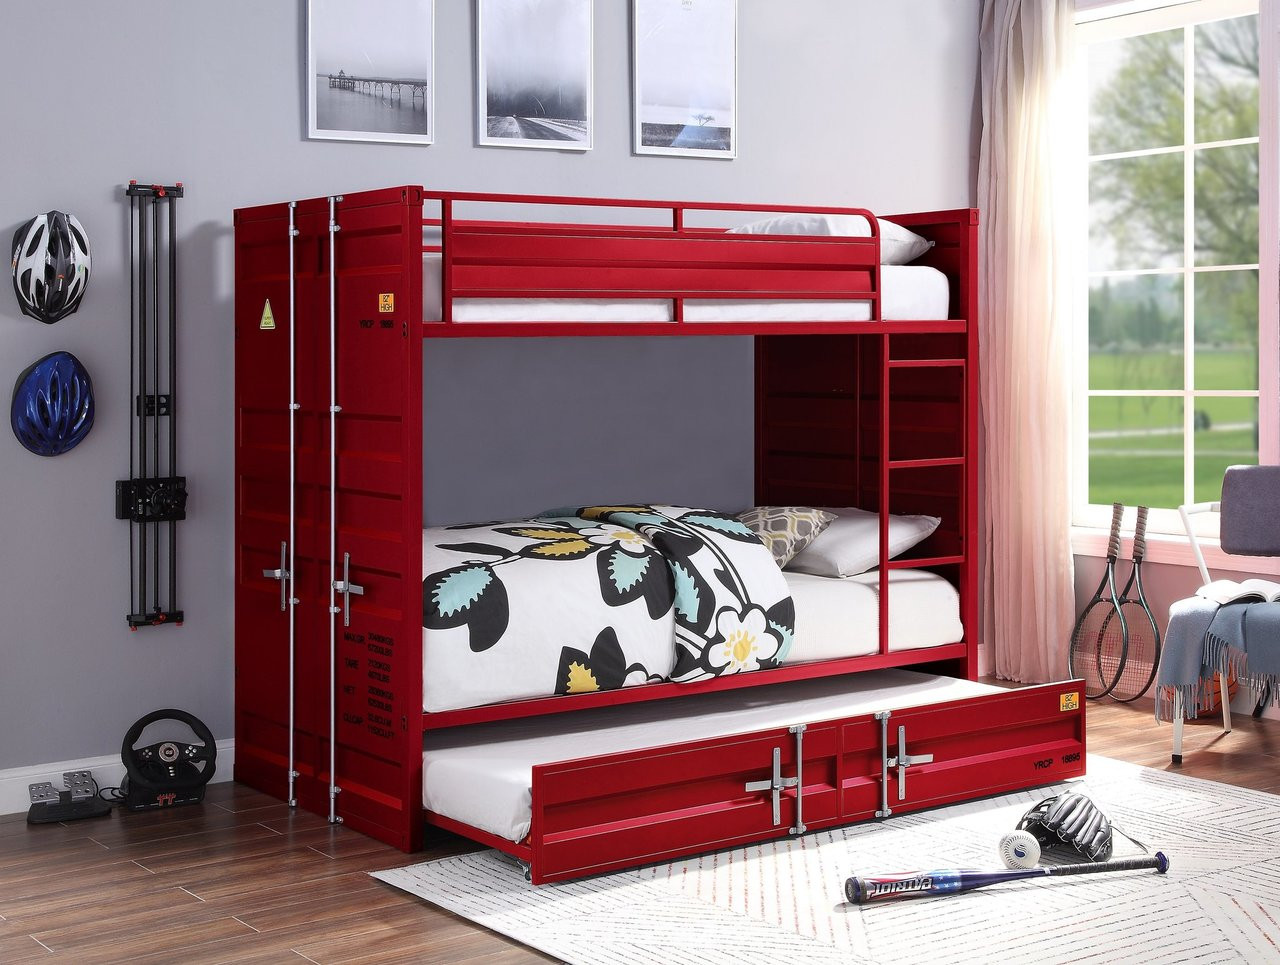 Picture of: Freight Container Theme Twin Bunk Bed Red Blue White